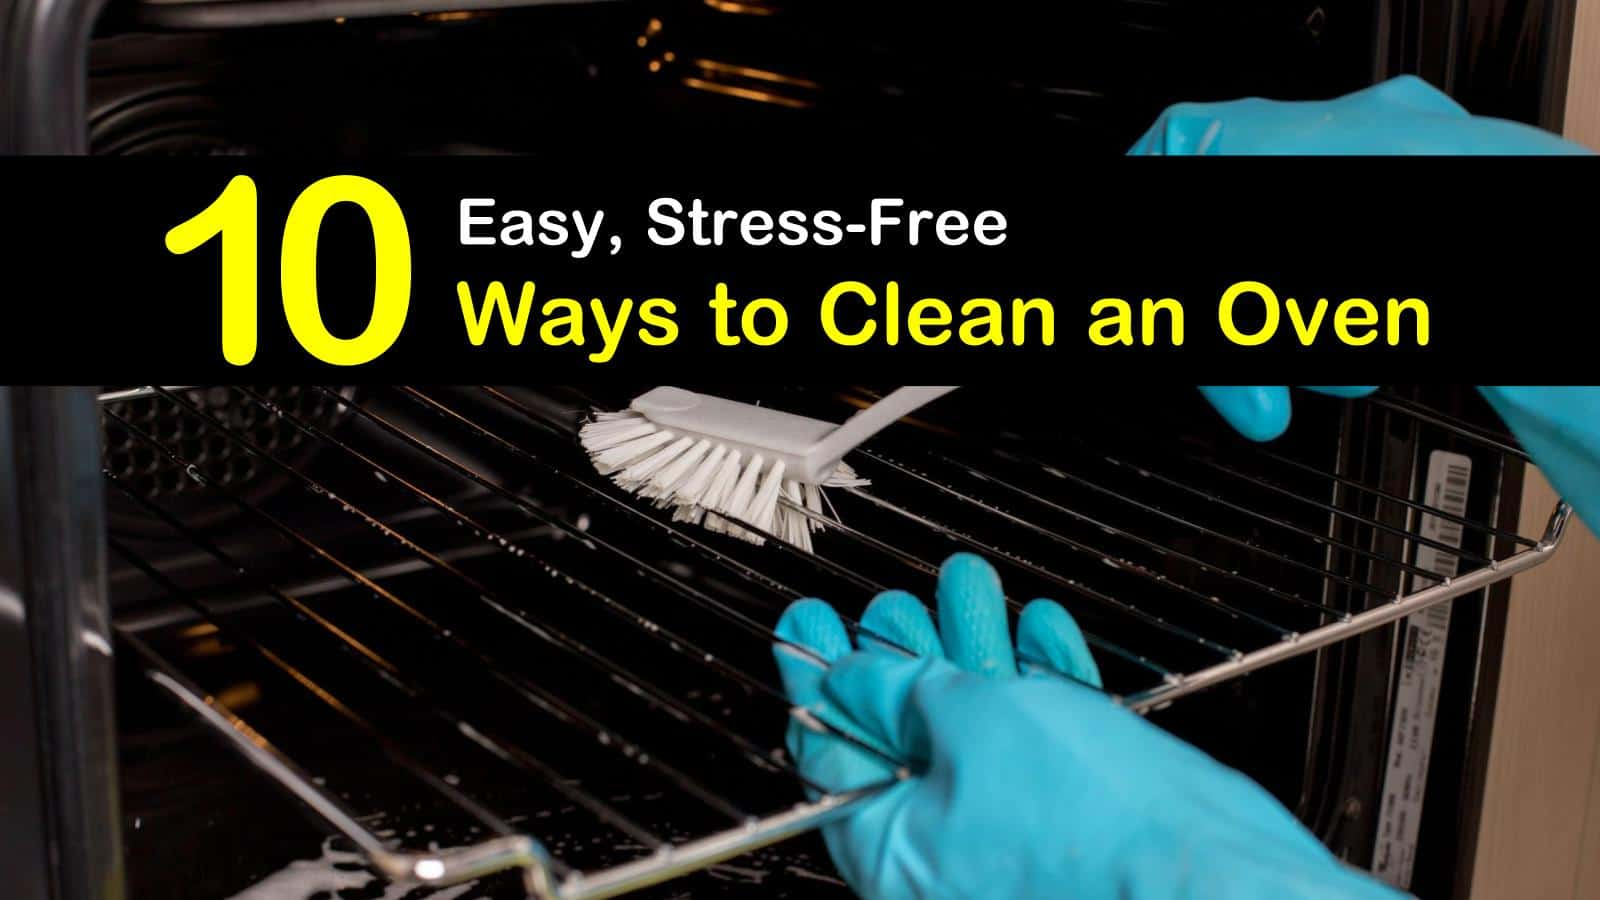 ways to clean an oven titleimg1